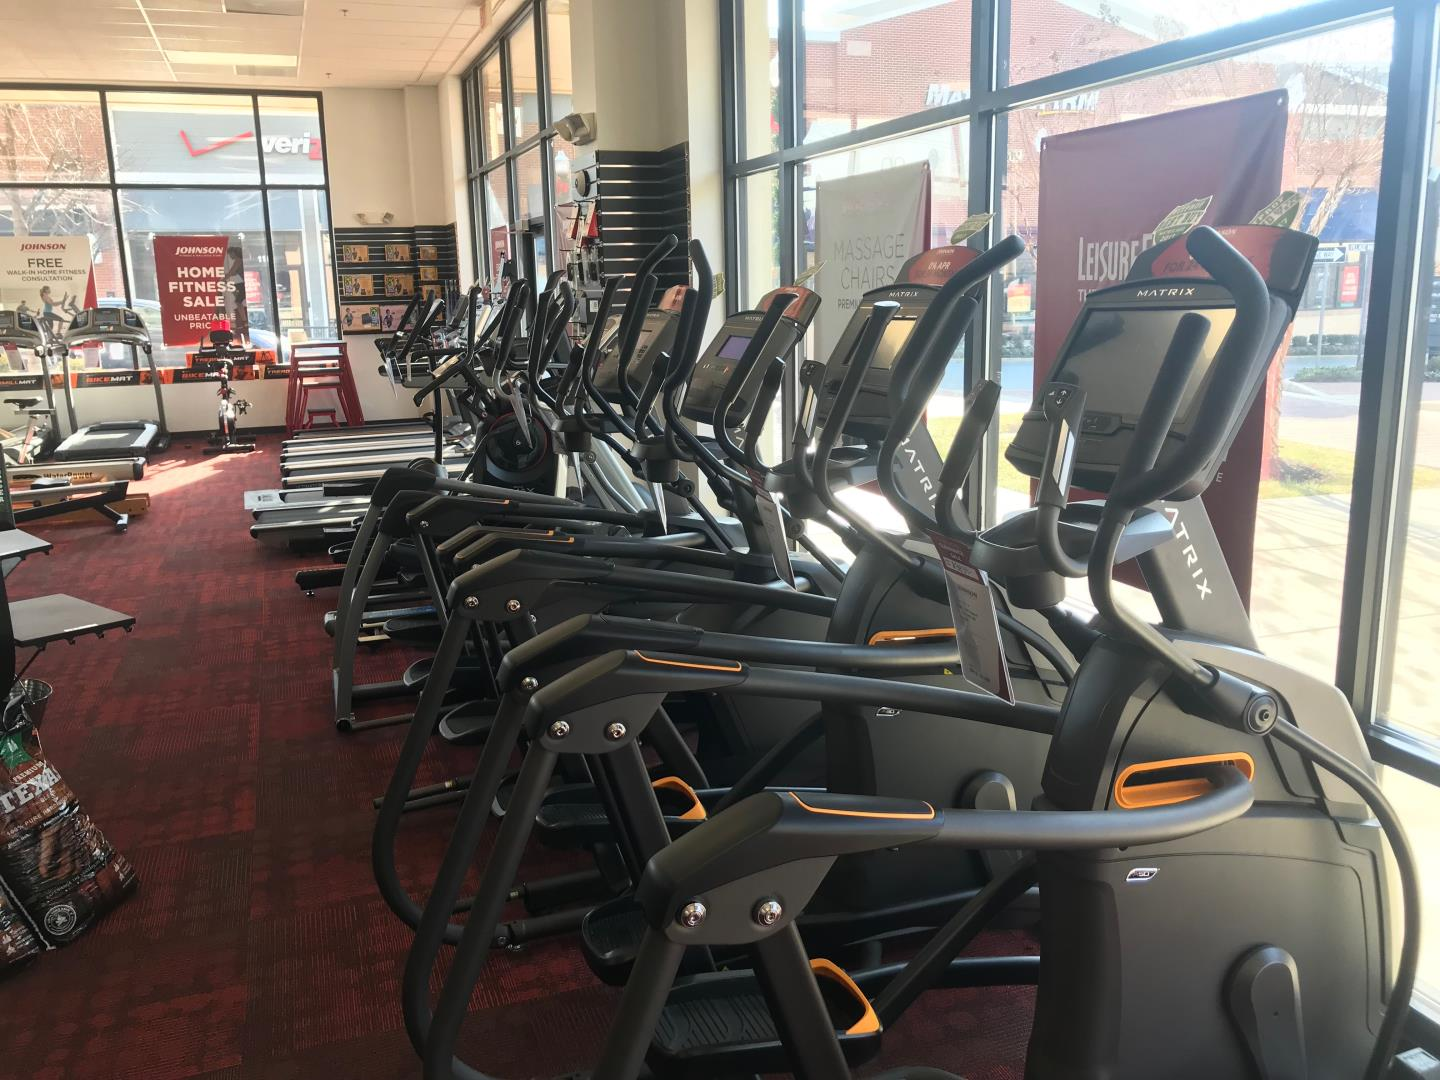 Leisure Fitness - Leesburg, VA